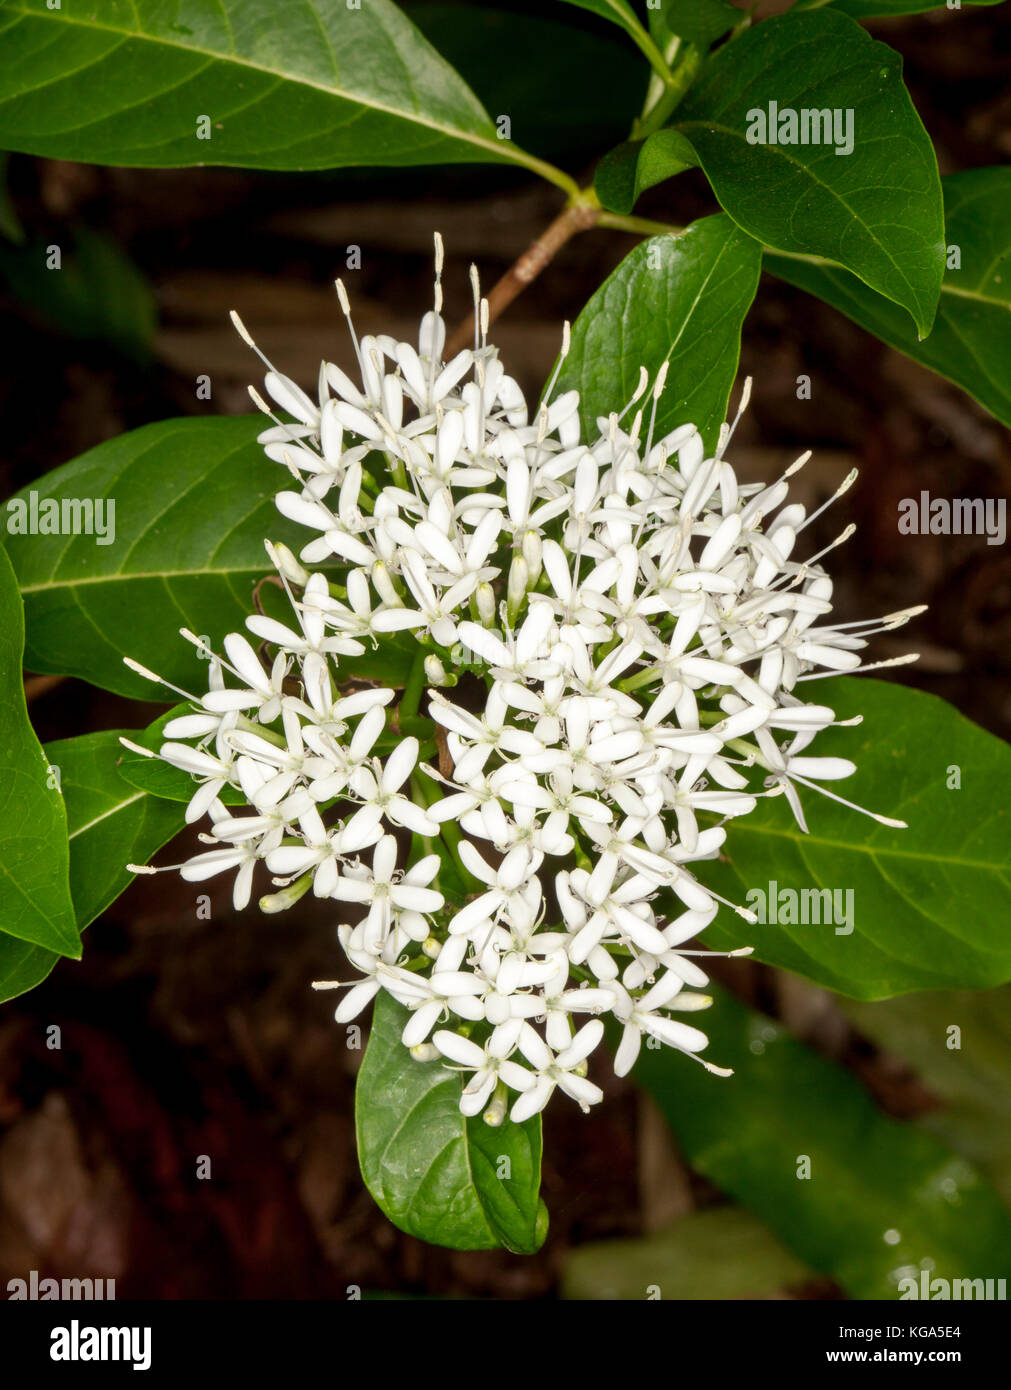 White perfumed flowers of Pavetta australiensis, Australian native shrub  attracts butterflies. - Stock Image